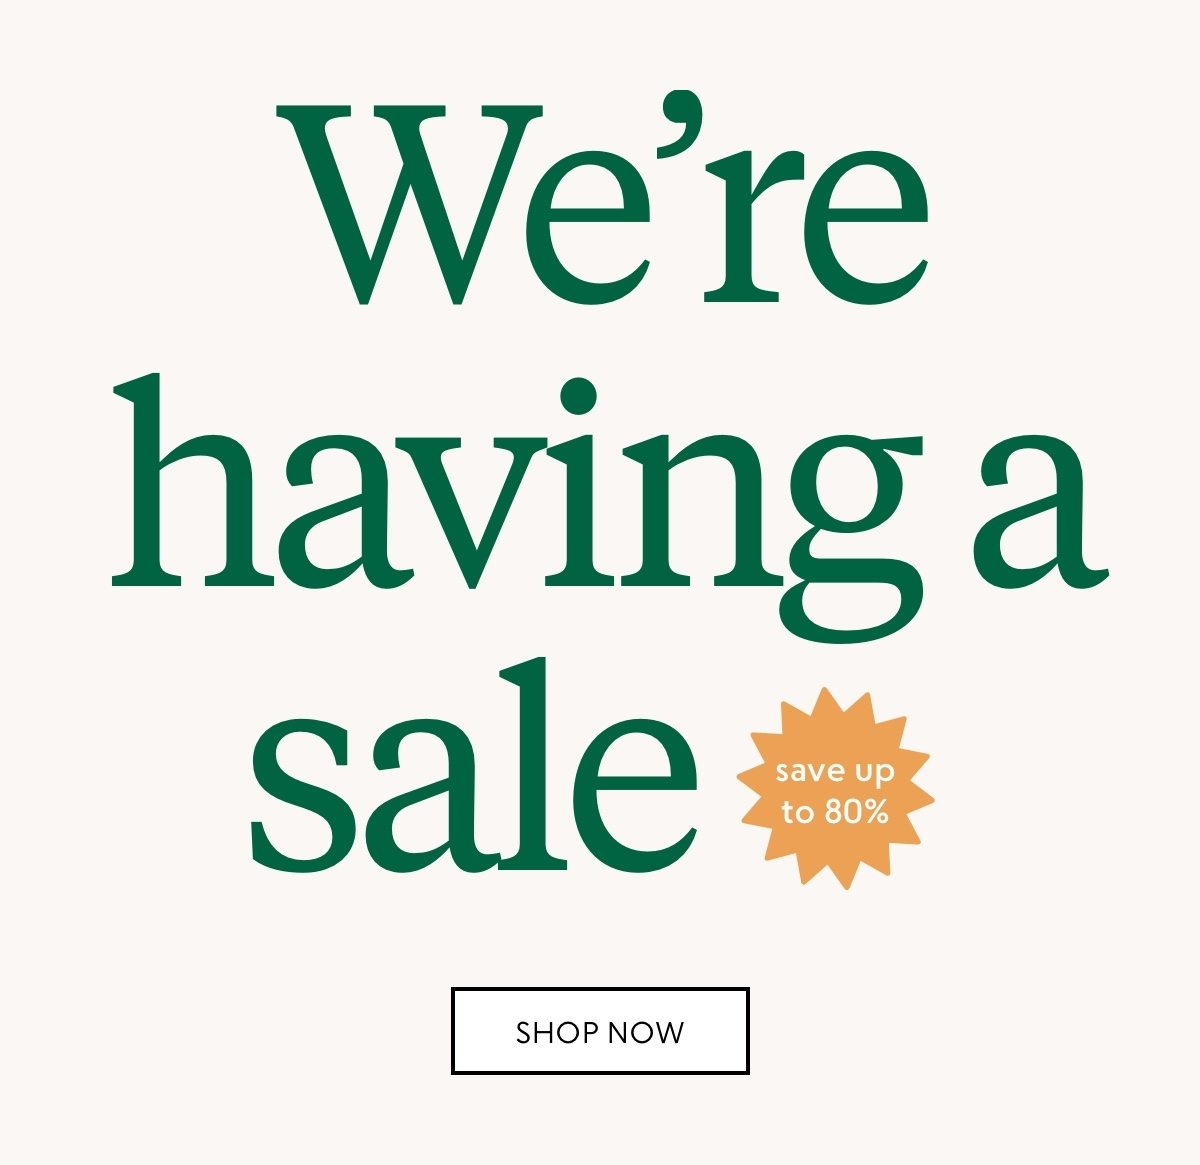 We're having a sale. Save up to 80% and shop now